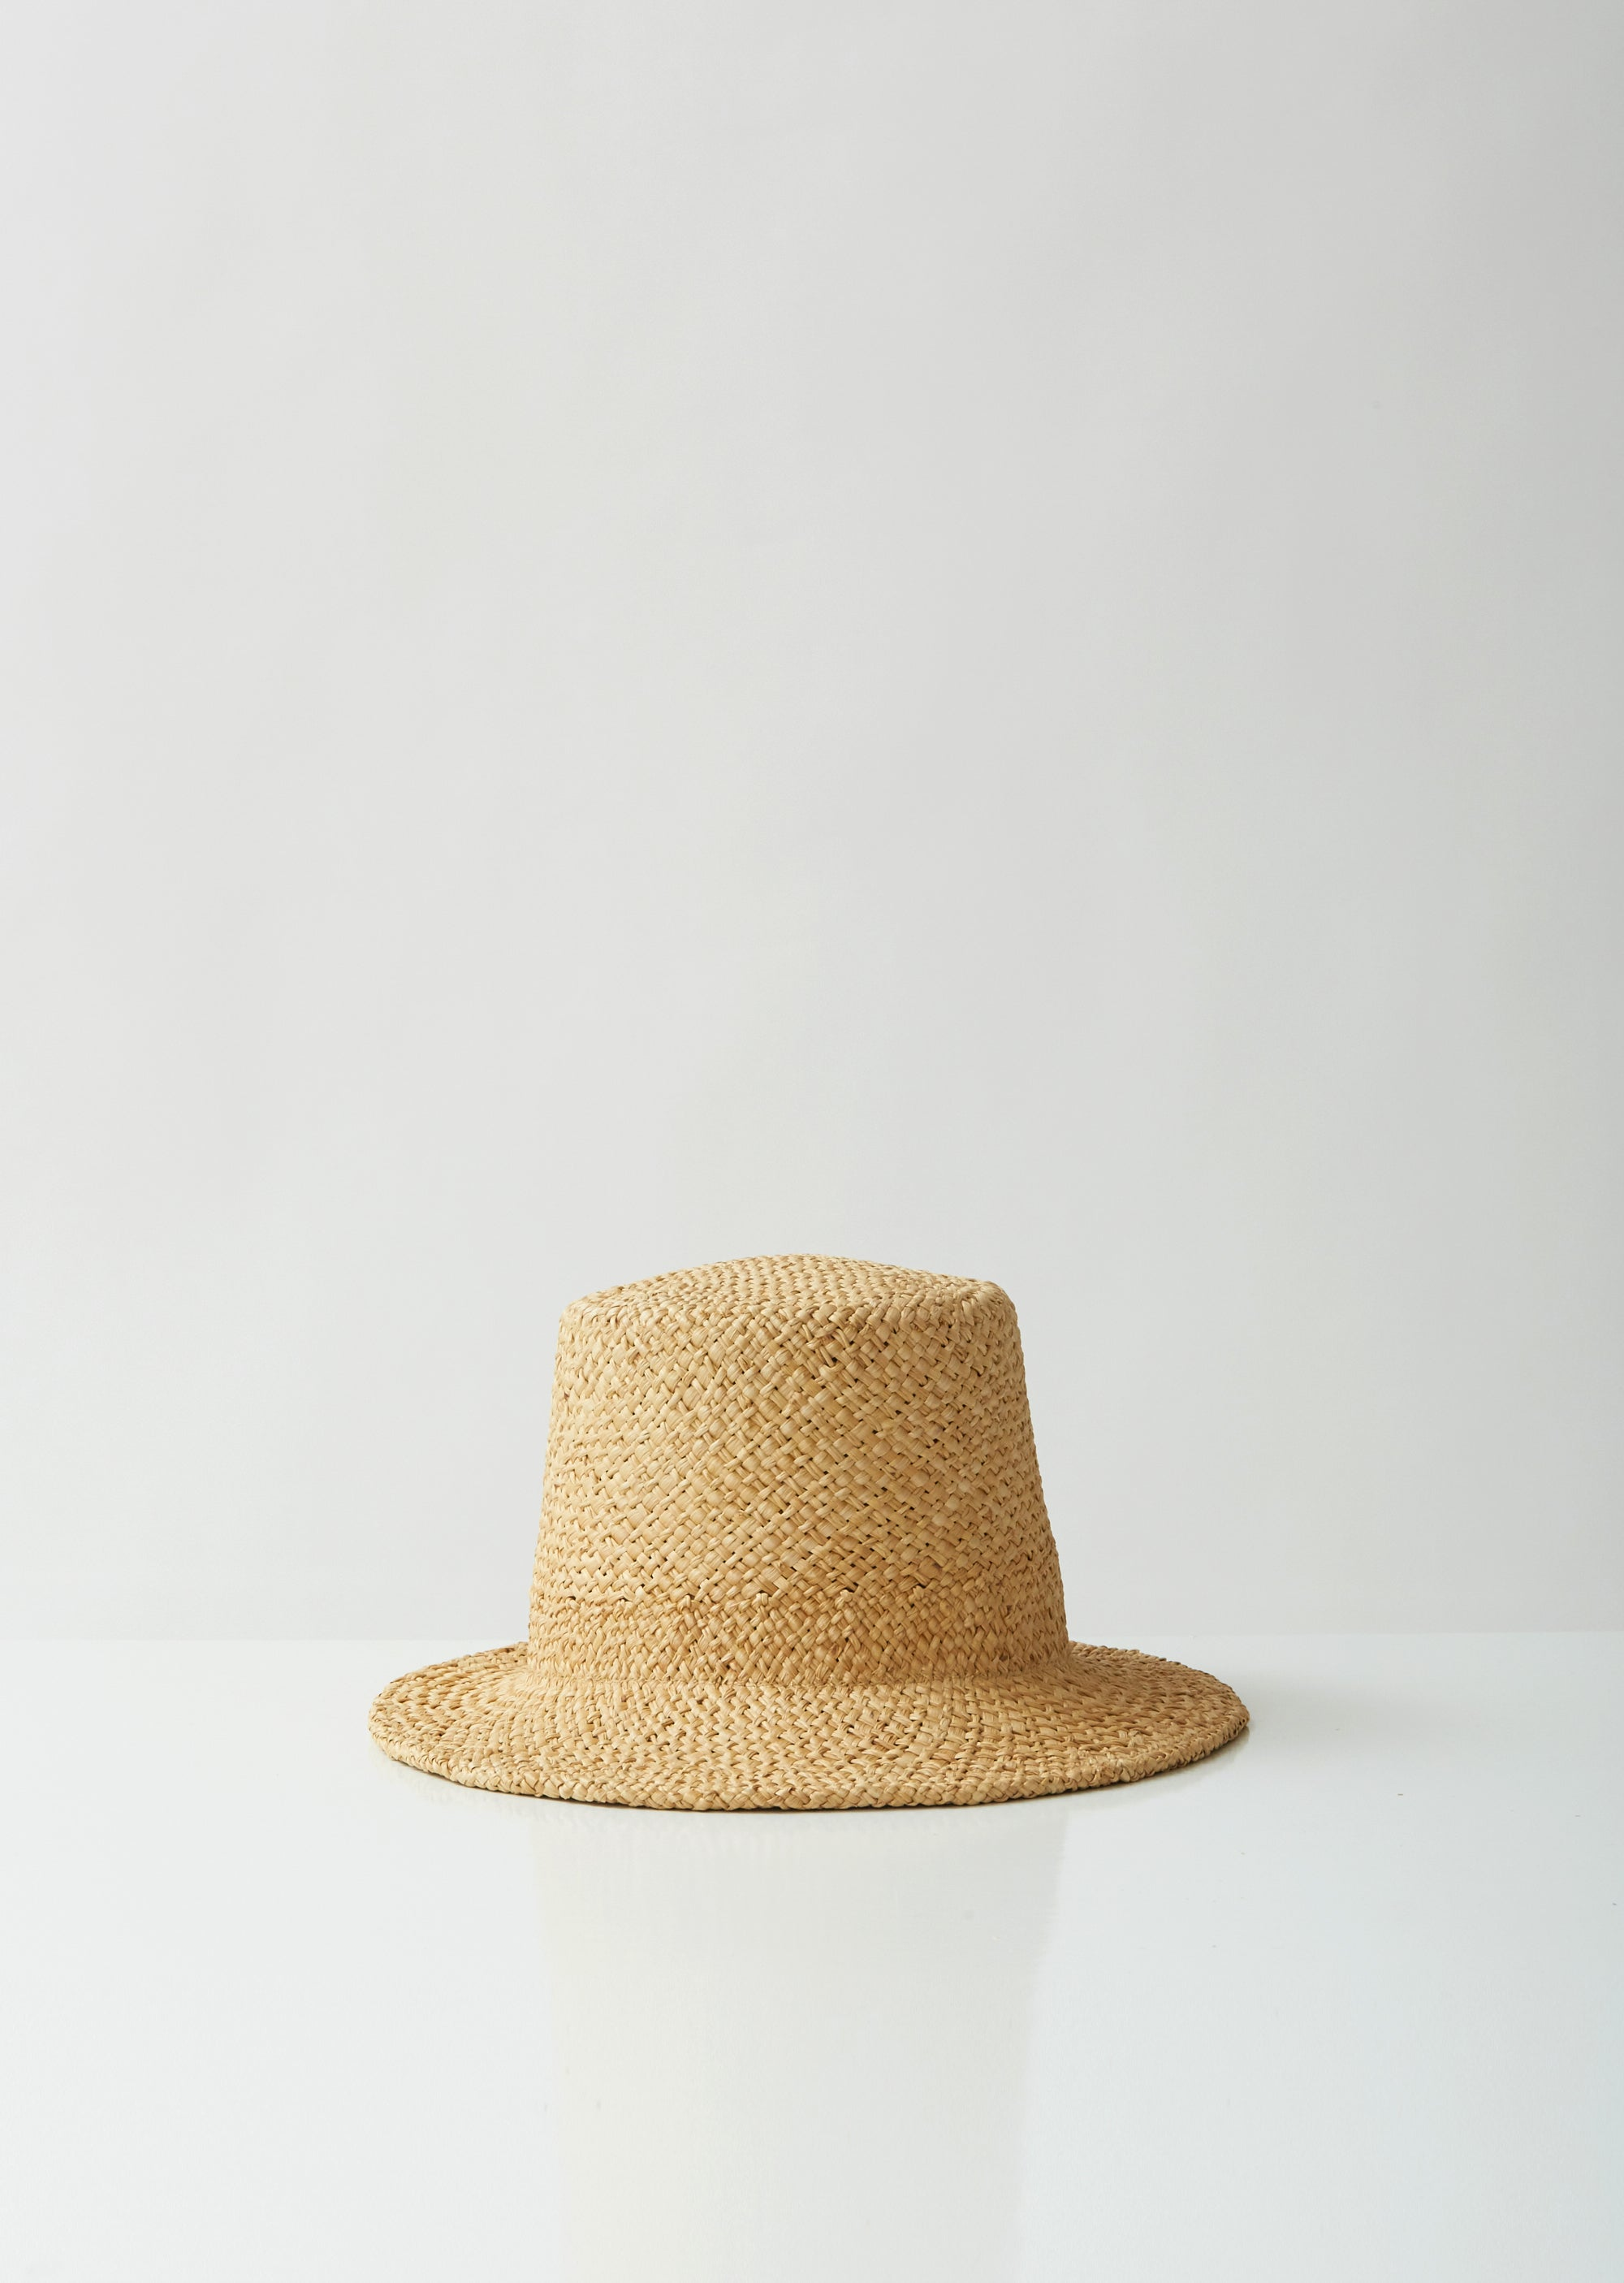 7fb2d884008 Unisex English Straw Hat – La Garçonne